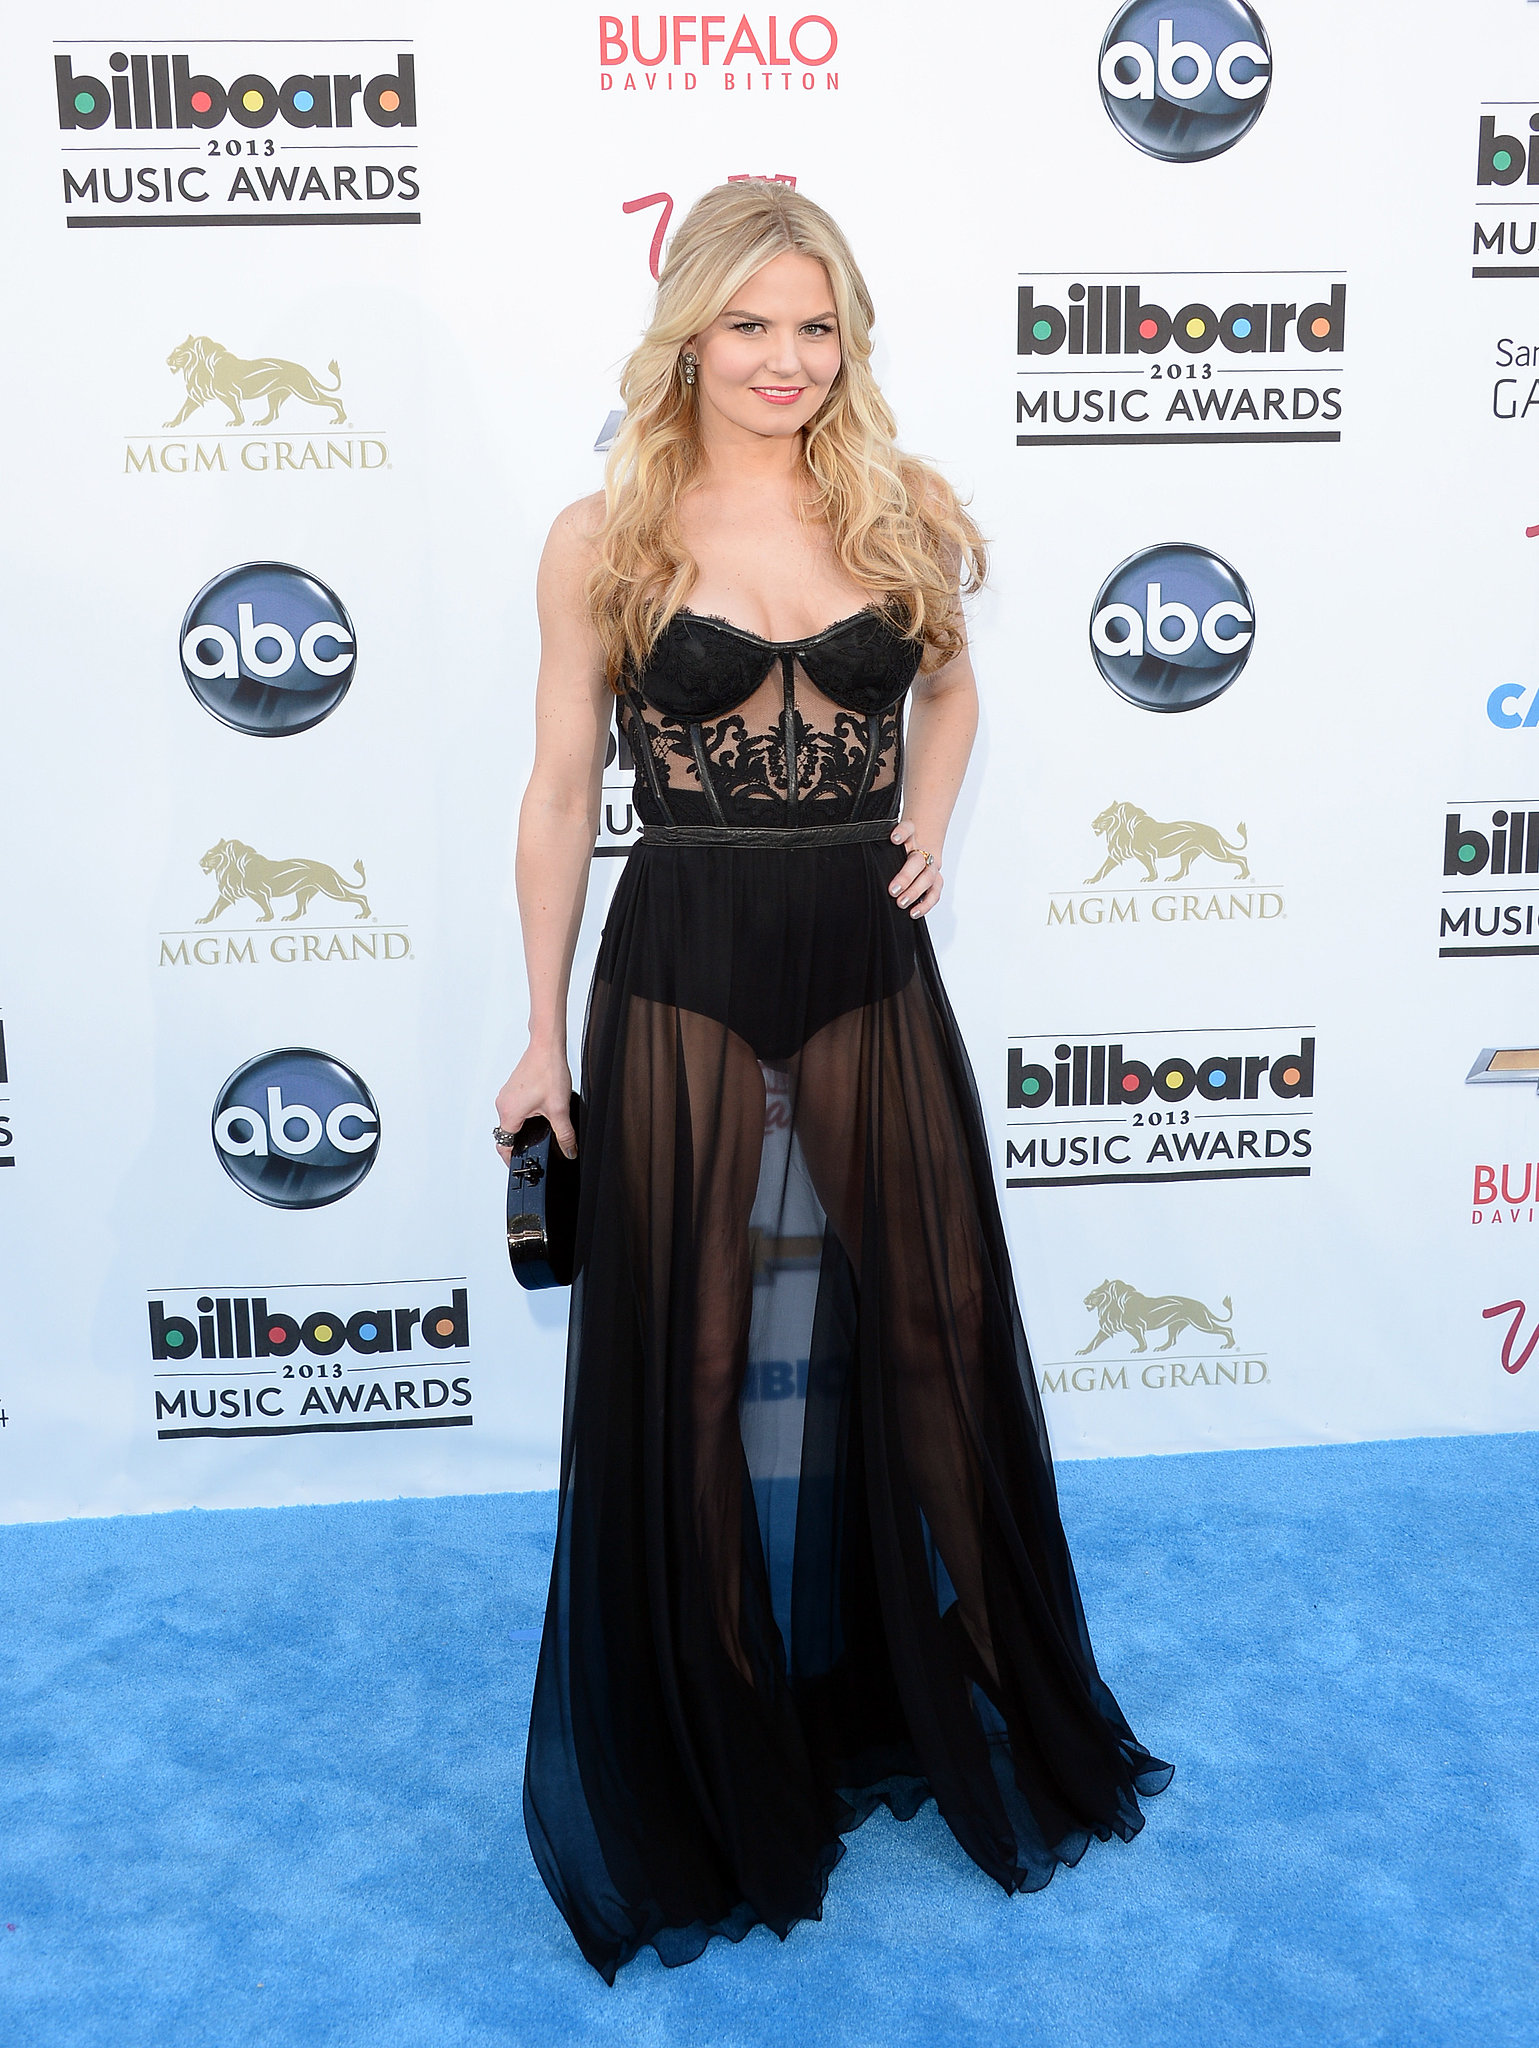 Jennifer Morrison turned heads in a very sexy Kristian Aadvenik dress. Between the corseted bodice and sheer skirt, there are quite a few skin-revealing elements to take in. She then added a black Edie Parker clutch to match.